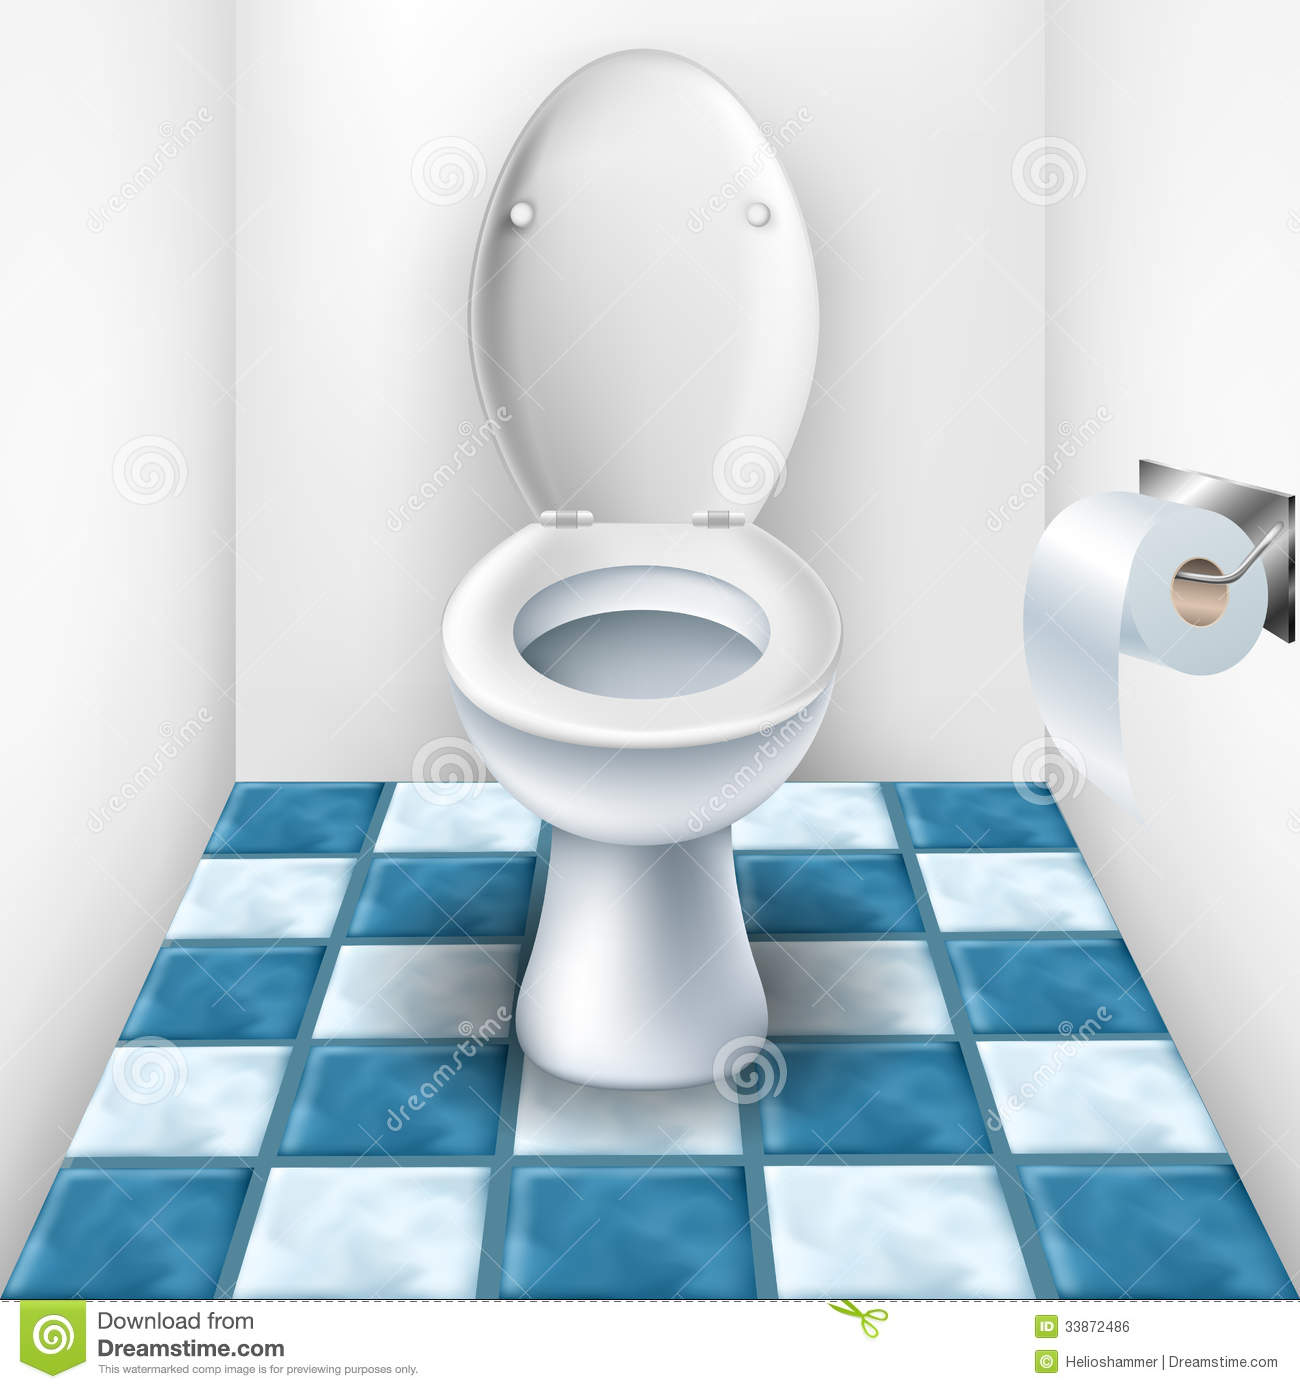 Bathroom With Toilet And Tile Pattern Royalty Free Stock Image Image 33872486